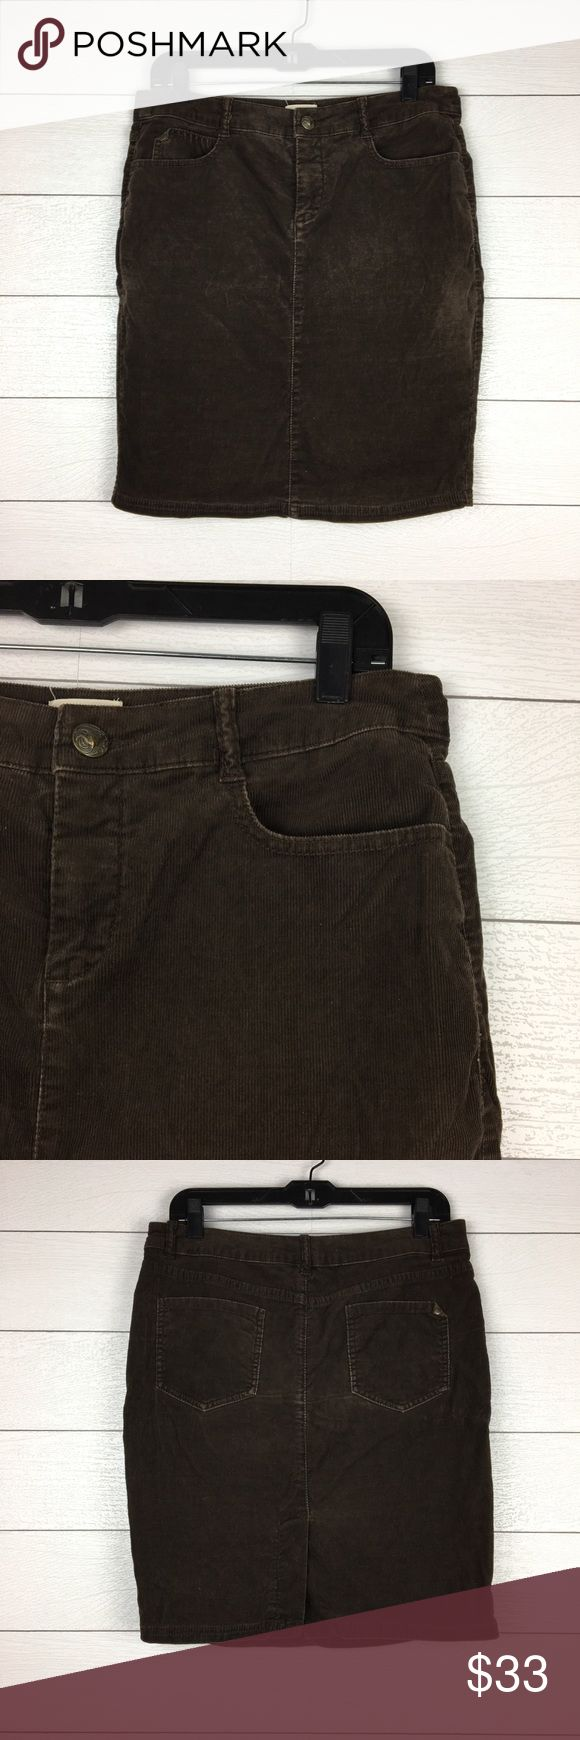 Idra Anthropologie Brown Corduroy Pencil Skirt 98% cotton, 2% spandex.  Idra from Anthropologie.  Chocolate brown corduroy fabric.  Button and zipper closure.  Front and back pockets.  Vent in the back.  Excellent pre-owned condition. Anthropologie Skirts Pencil